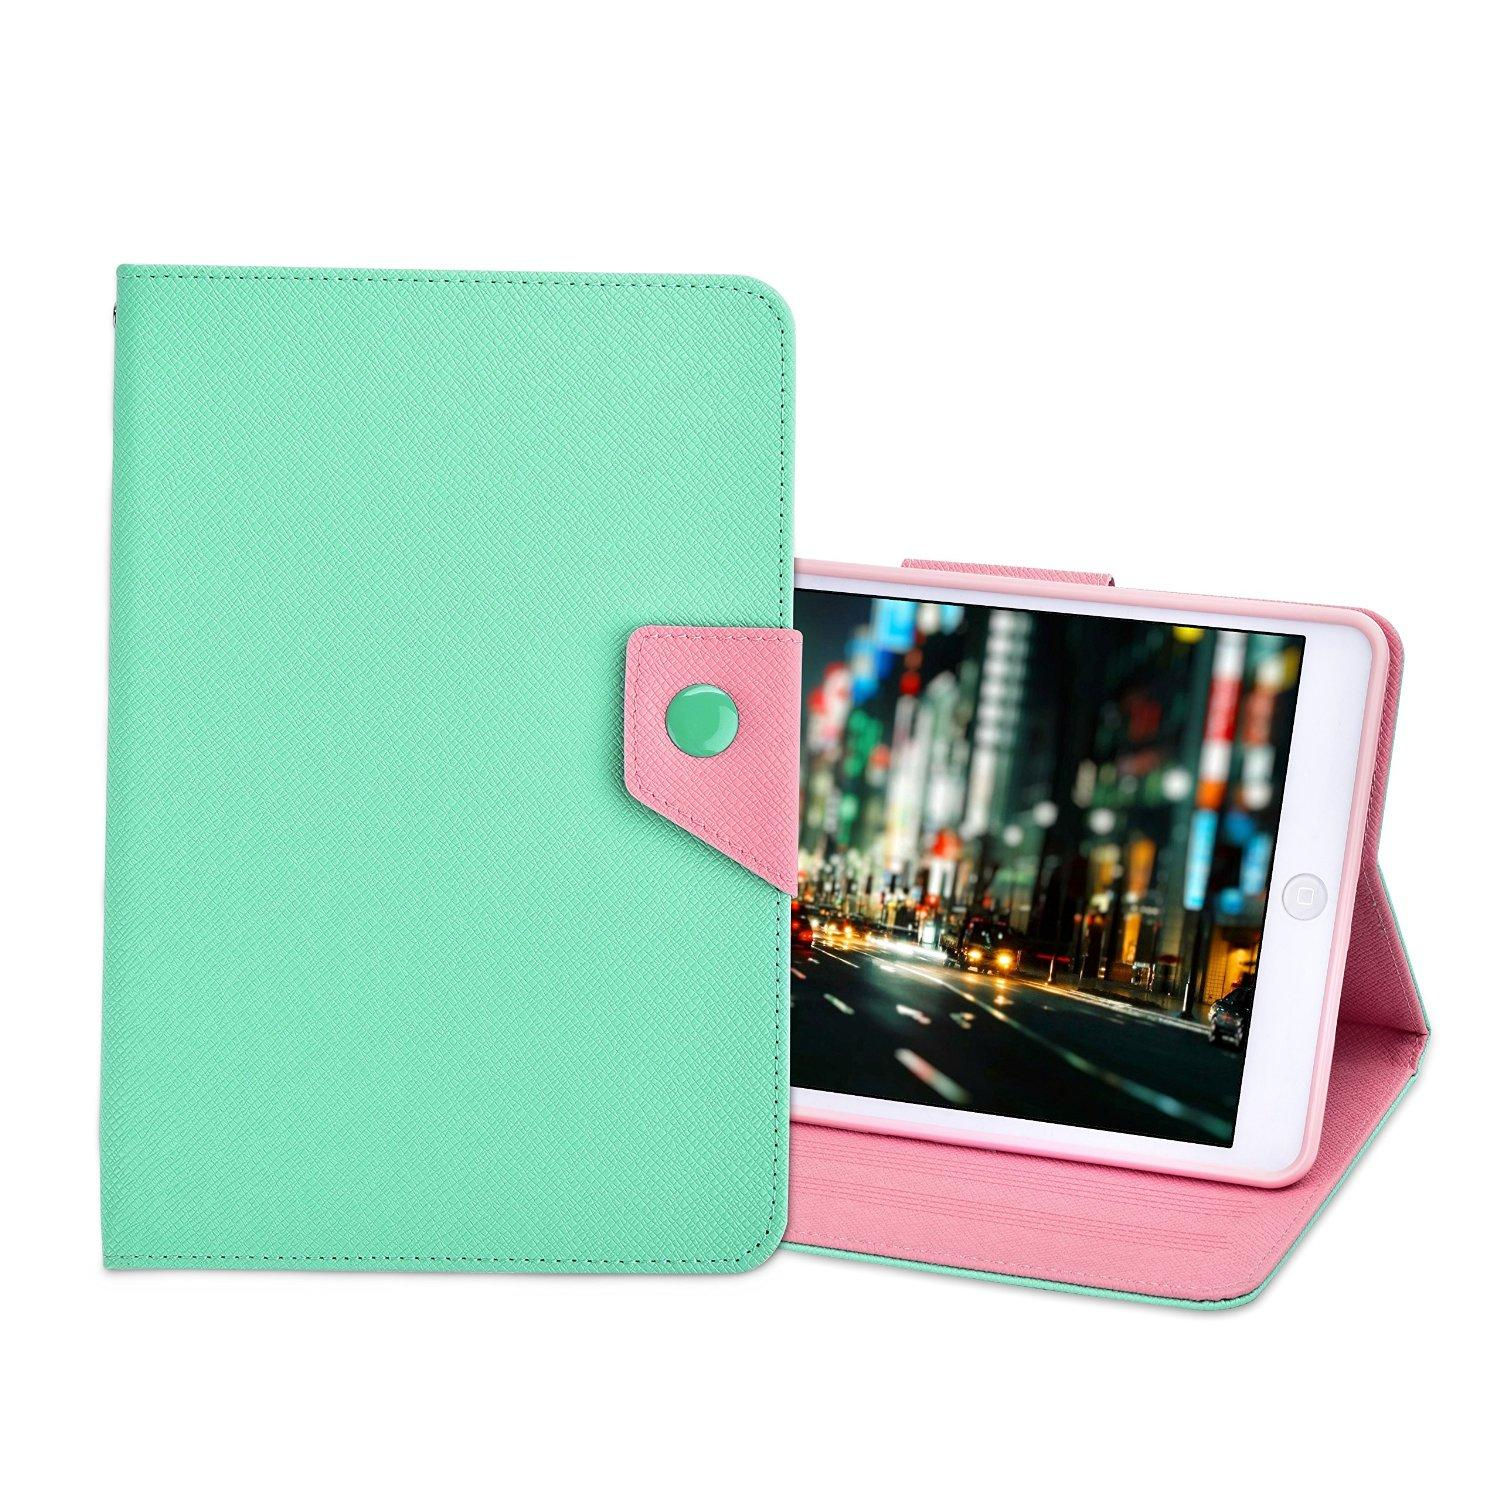 Kinps for iPad Mini 1/2/3 Multicolor Smart Case Cover